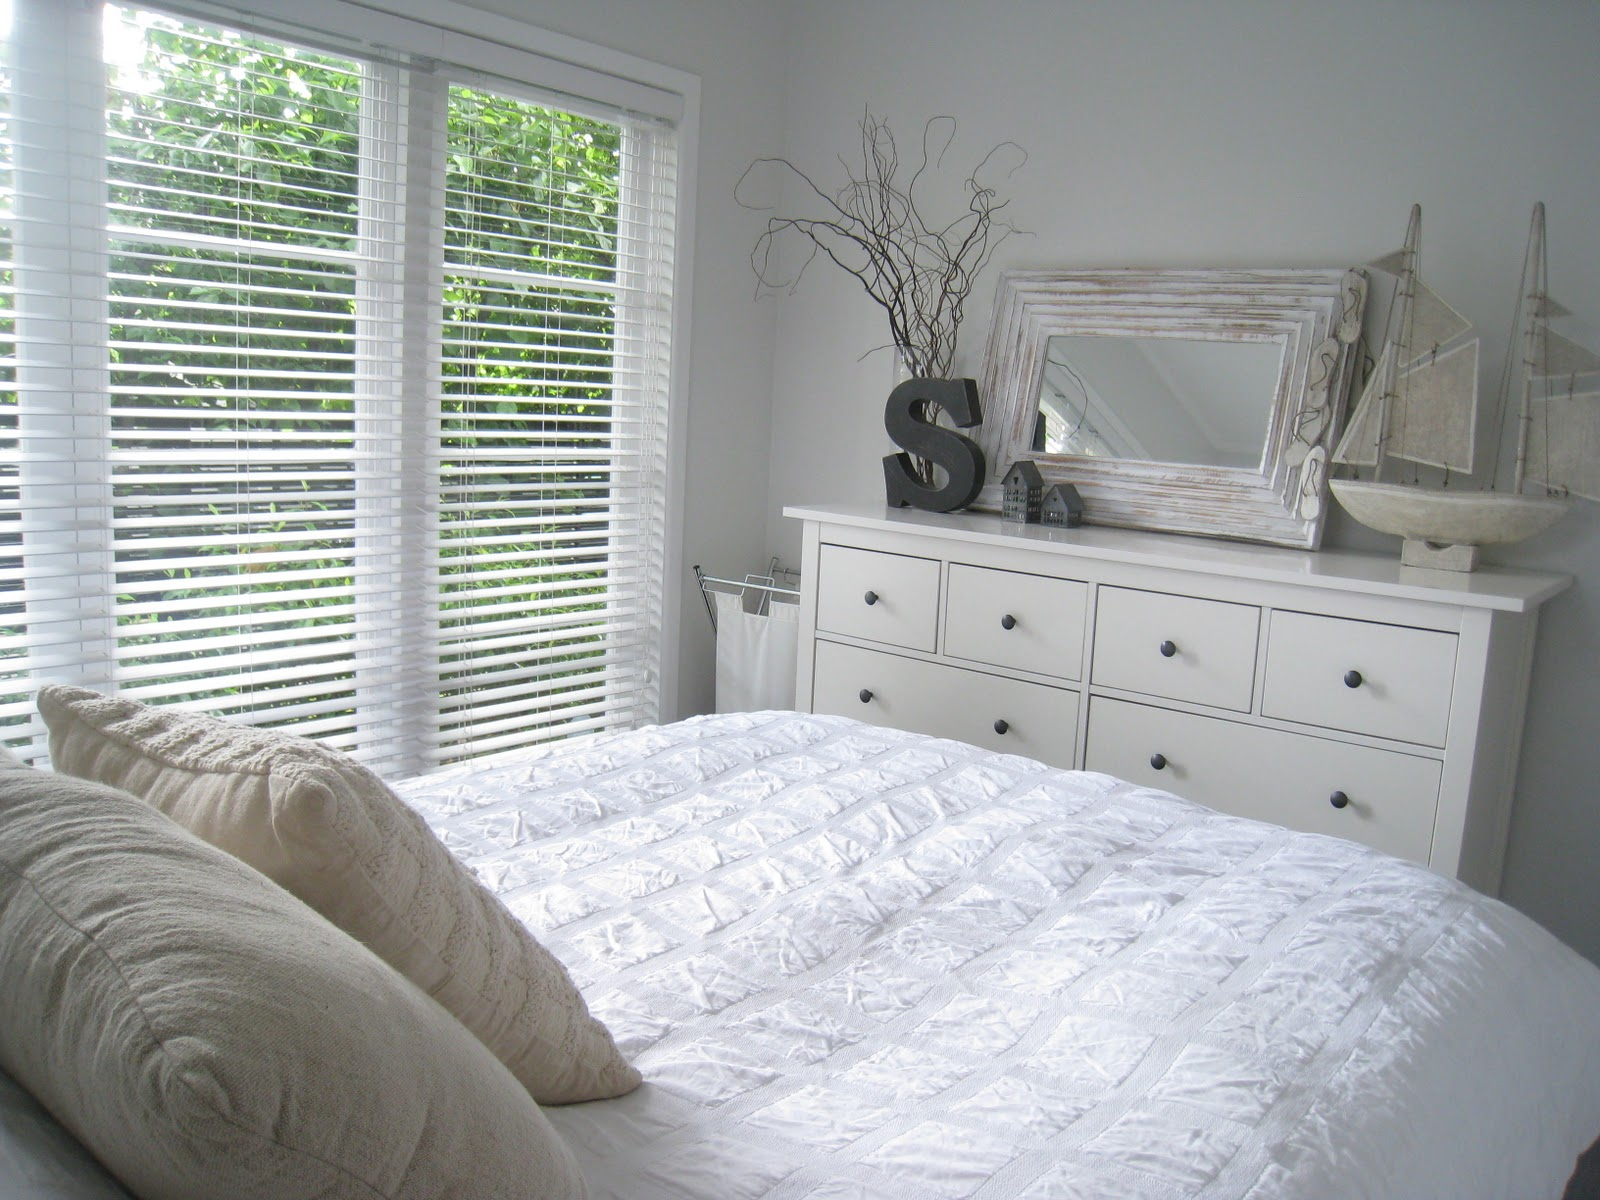 Ikea hemnes bedroom furniture 20 reasons to bring the romance of